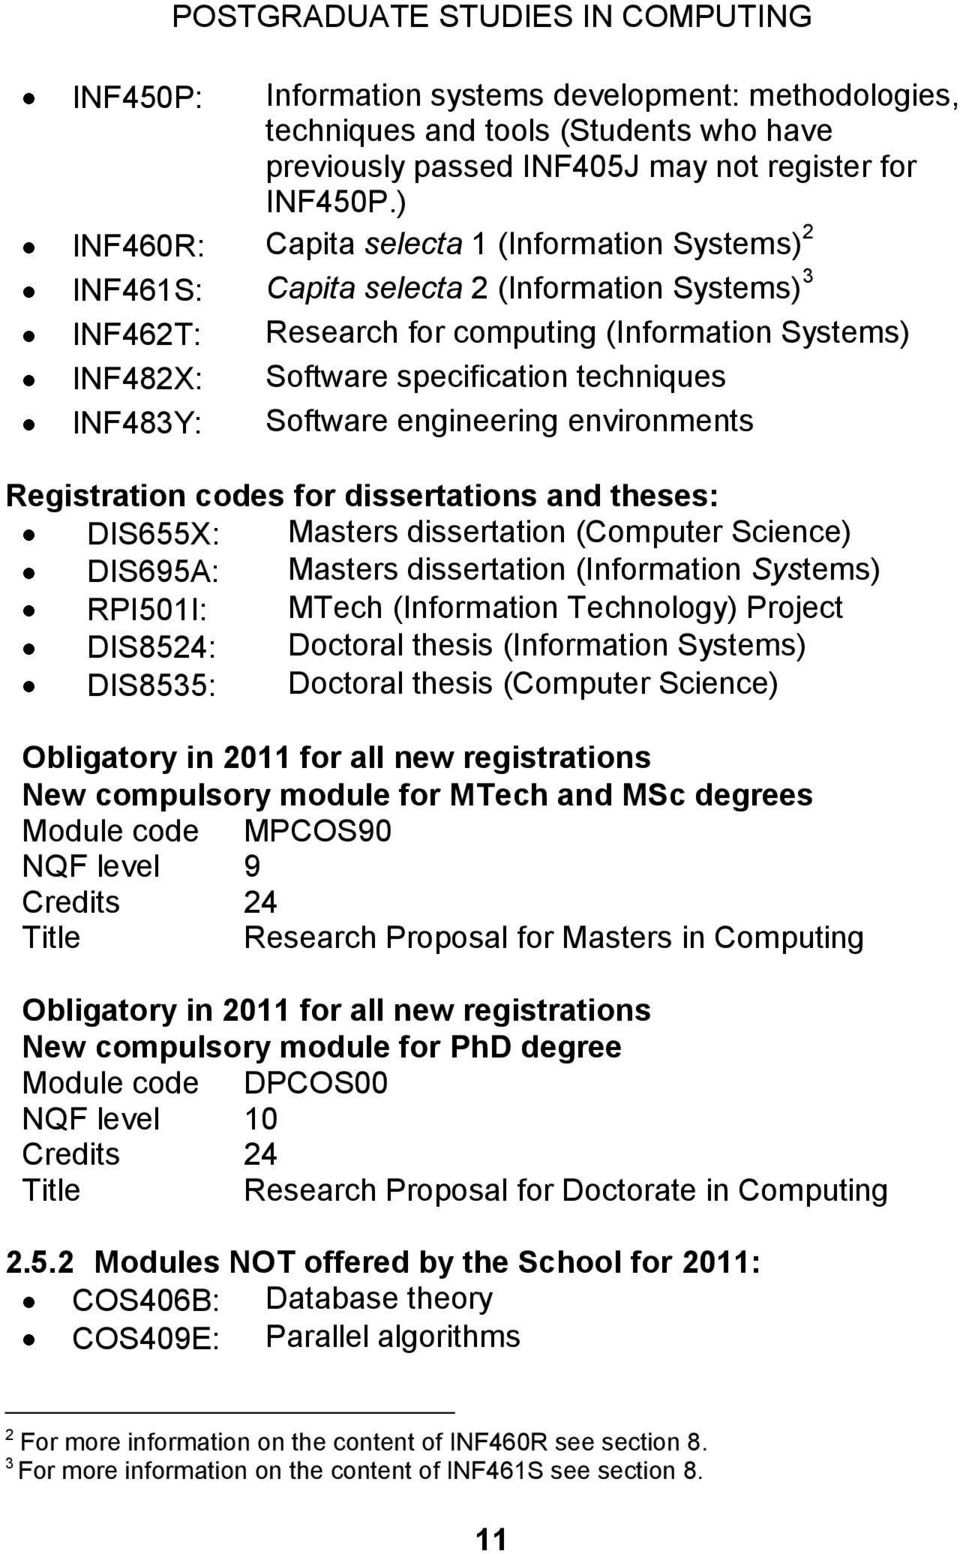 List Of Post Graduate Thesis in engineering project management